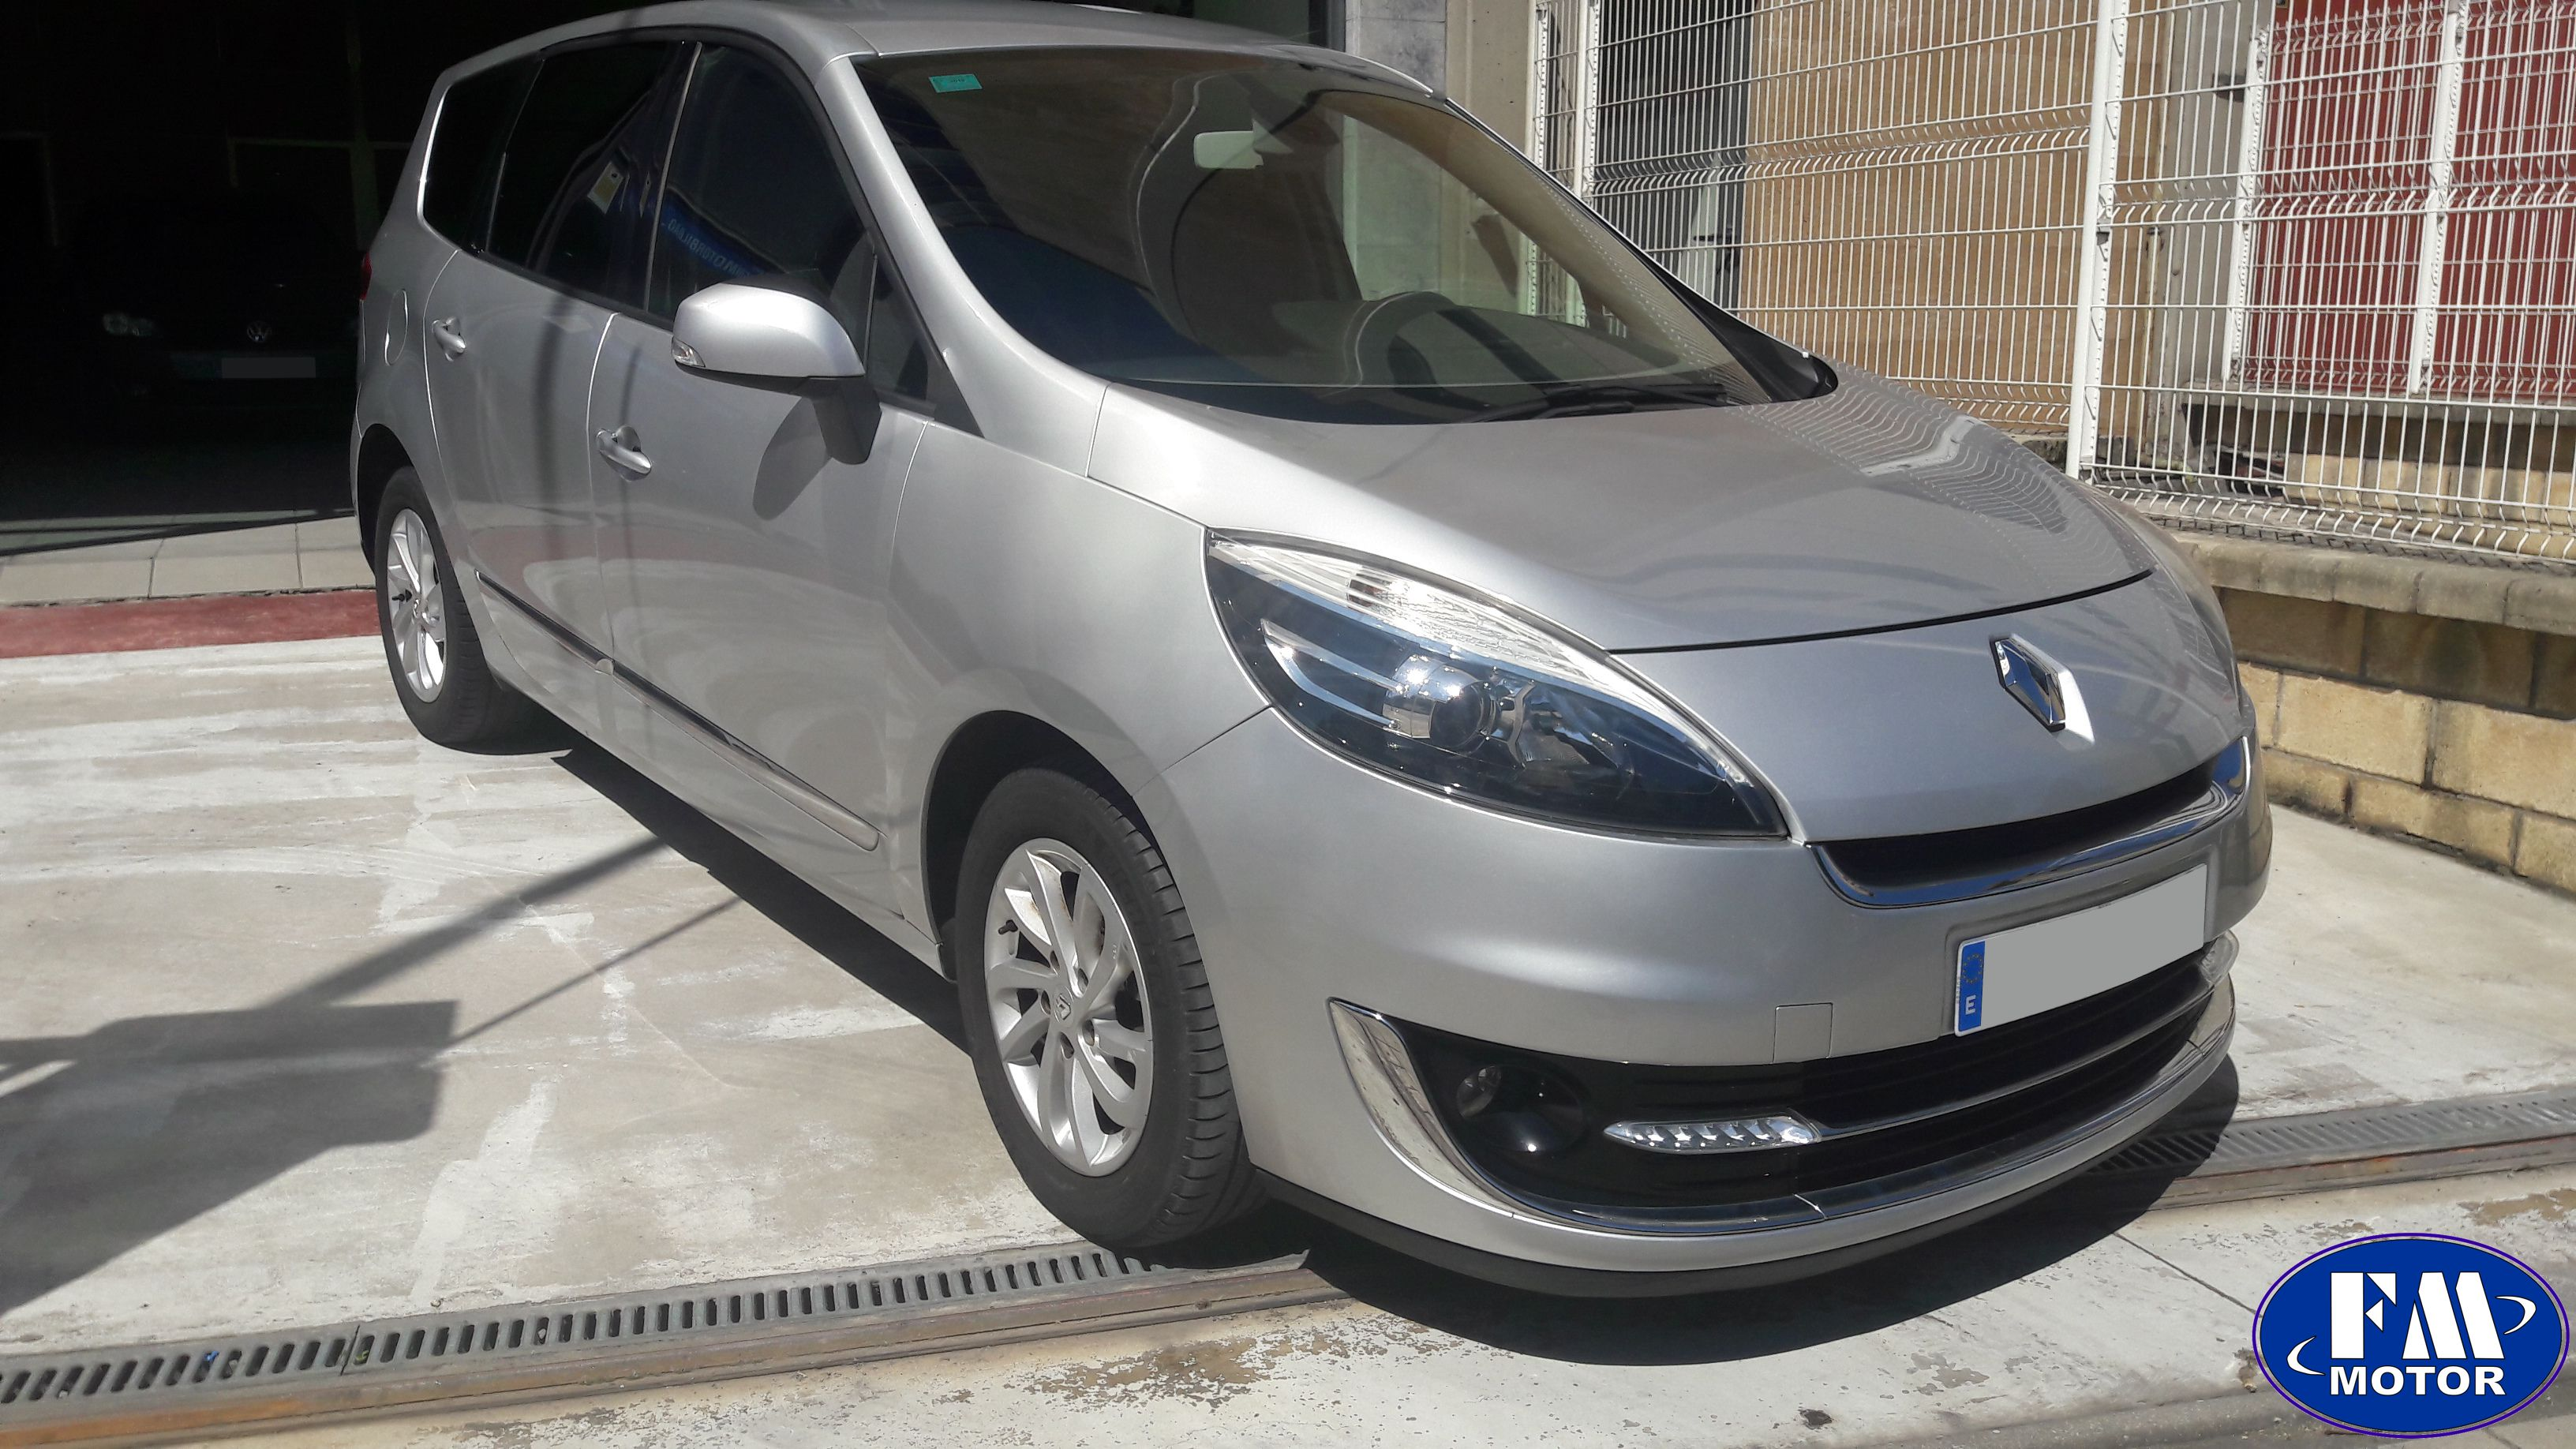 renault grand scenic 1 6 dci 130 cv fm motor bilbao. Black Bedroom Furniture Sets. Home Design Ideas